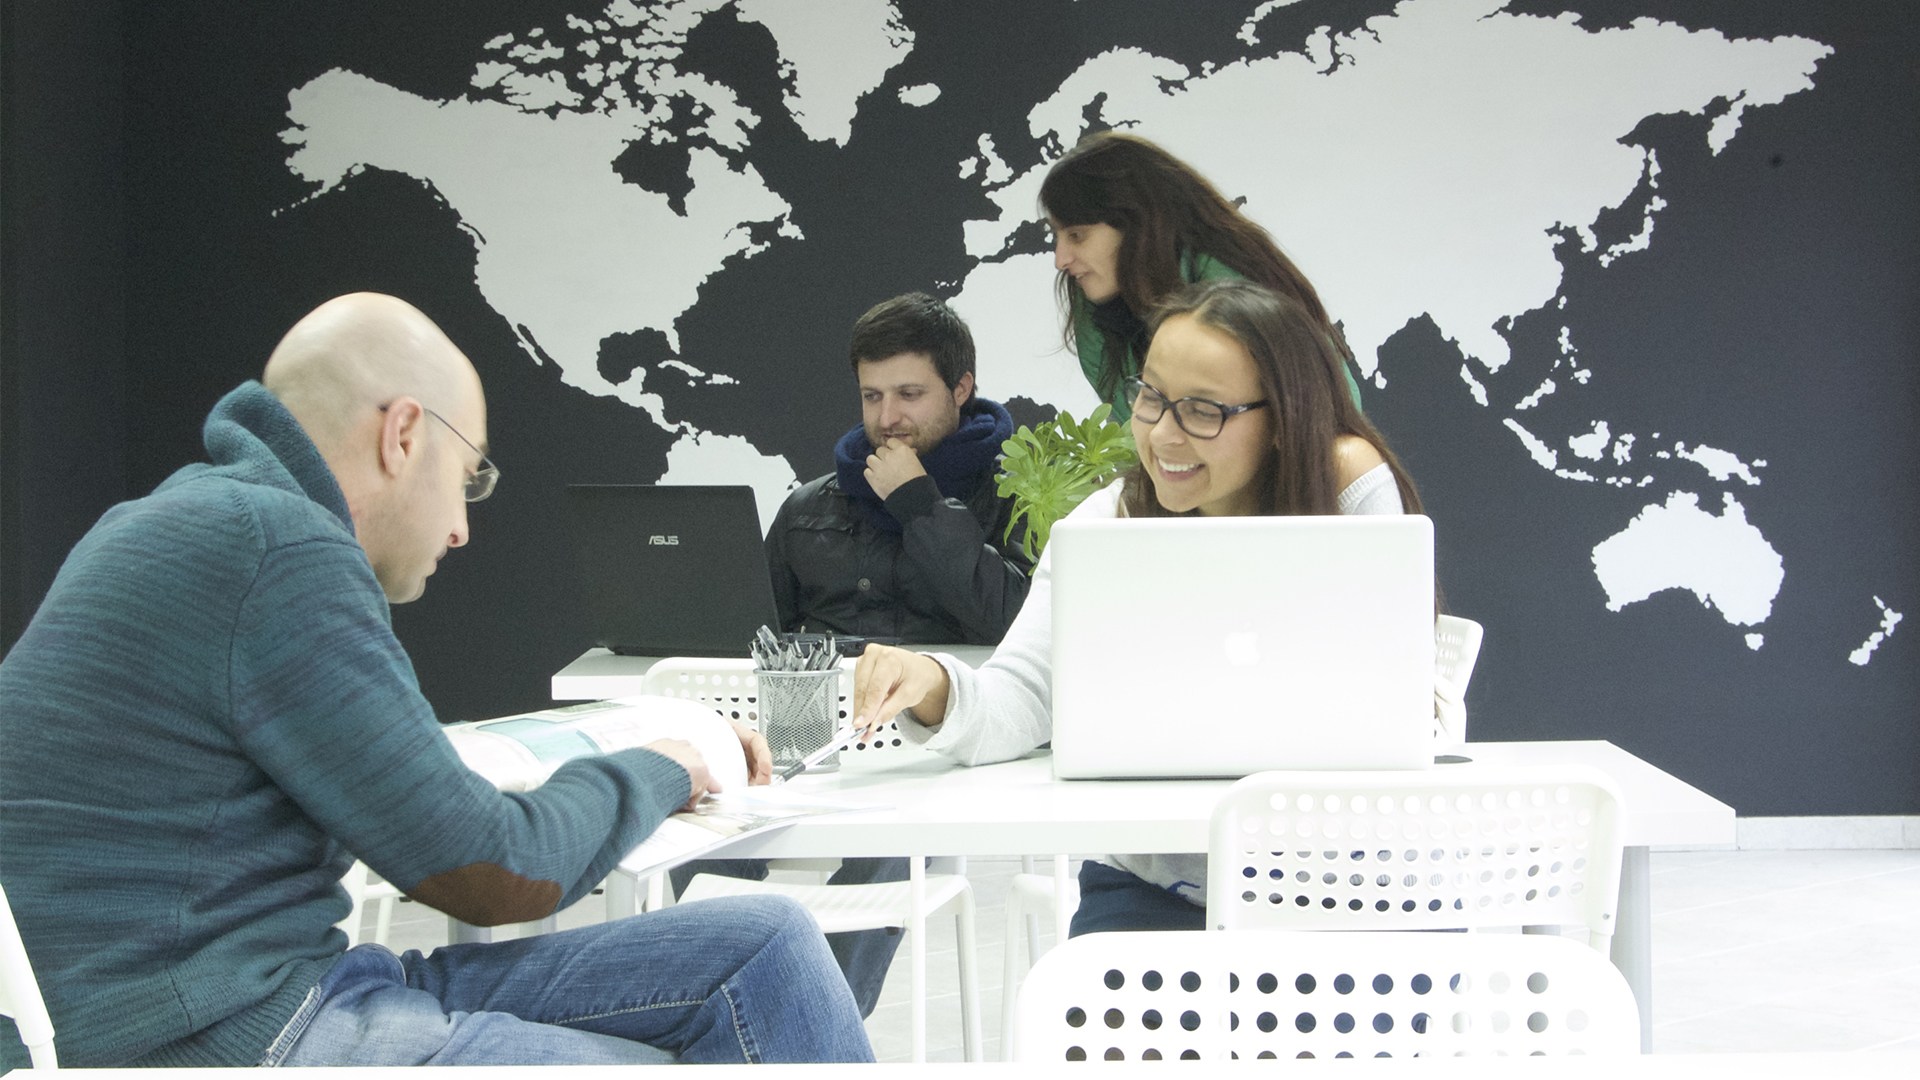 Coworking mallorca wohaby wohaby manacor 2 - Coworking mallorca ...